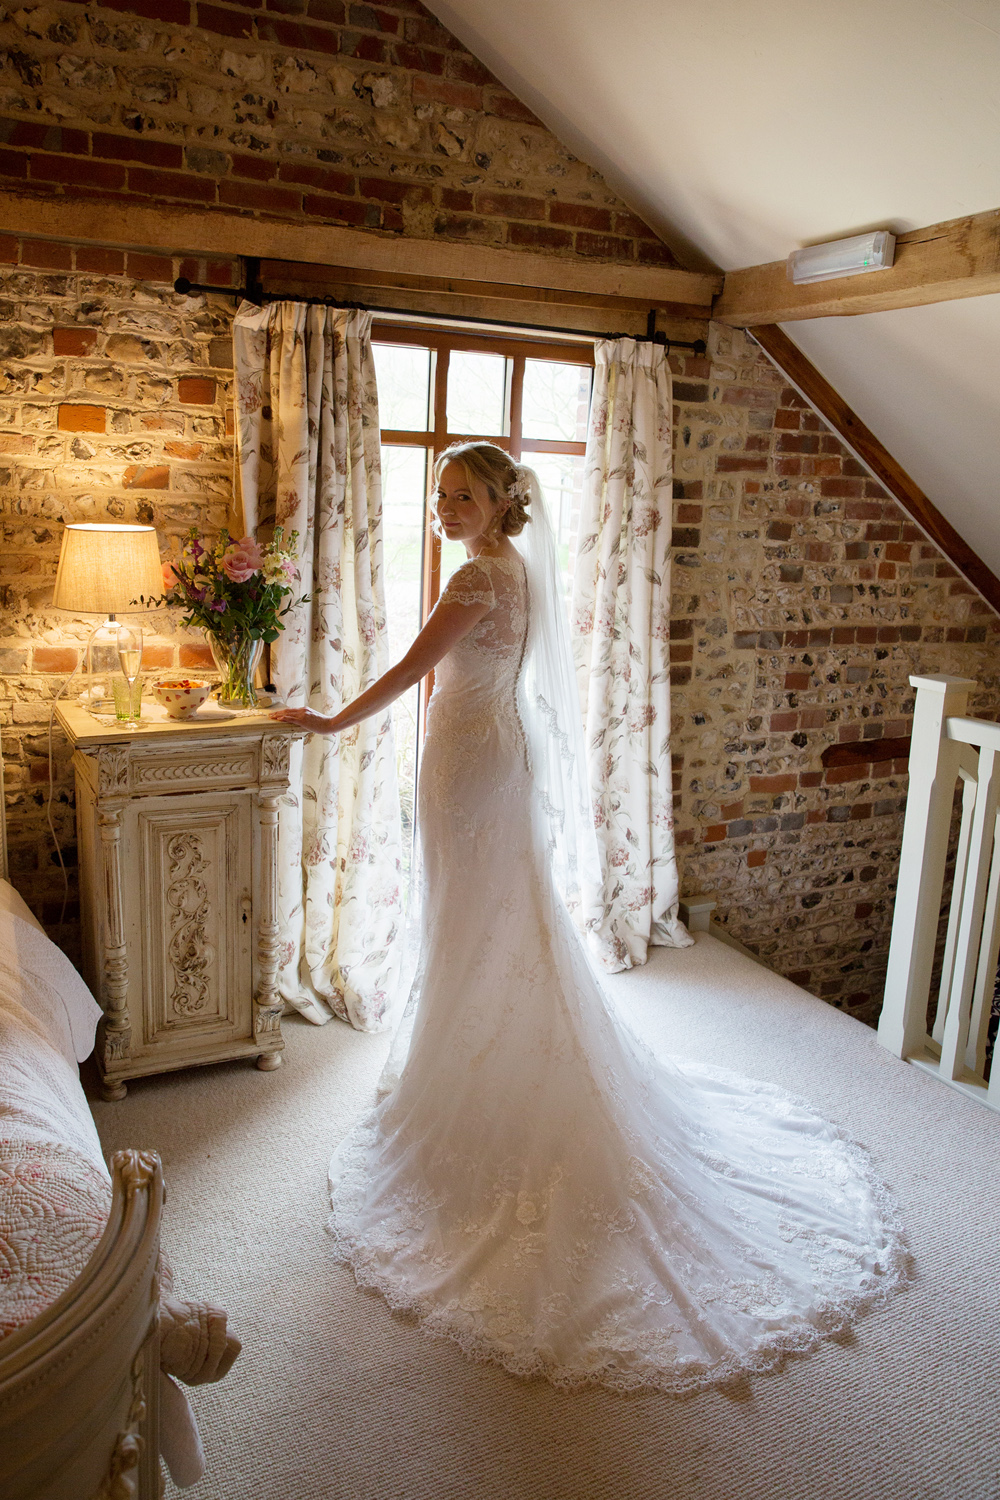 wedding dress, winter wedding at Upwaltham Barns by Helen England Photography, Kent